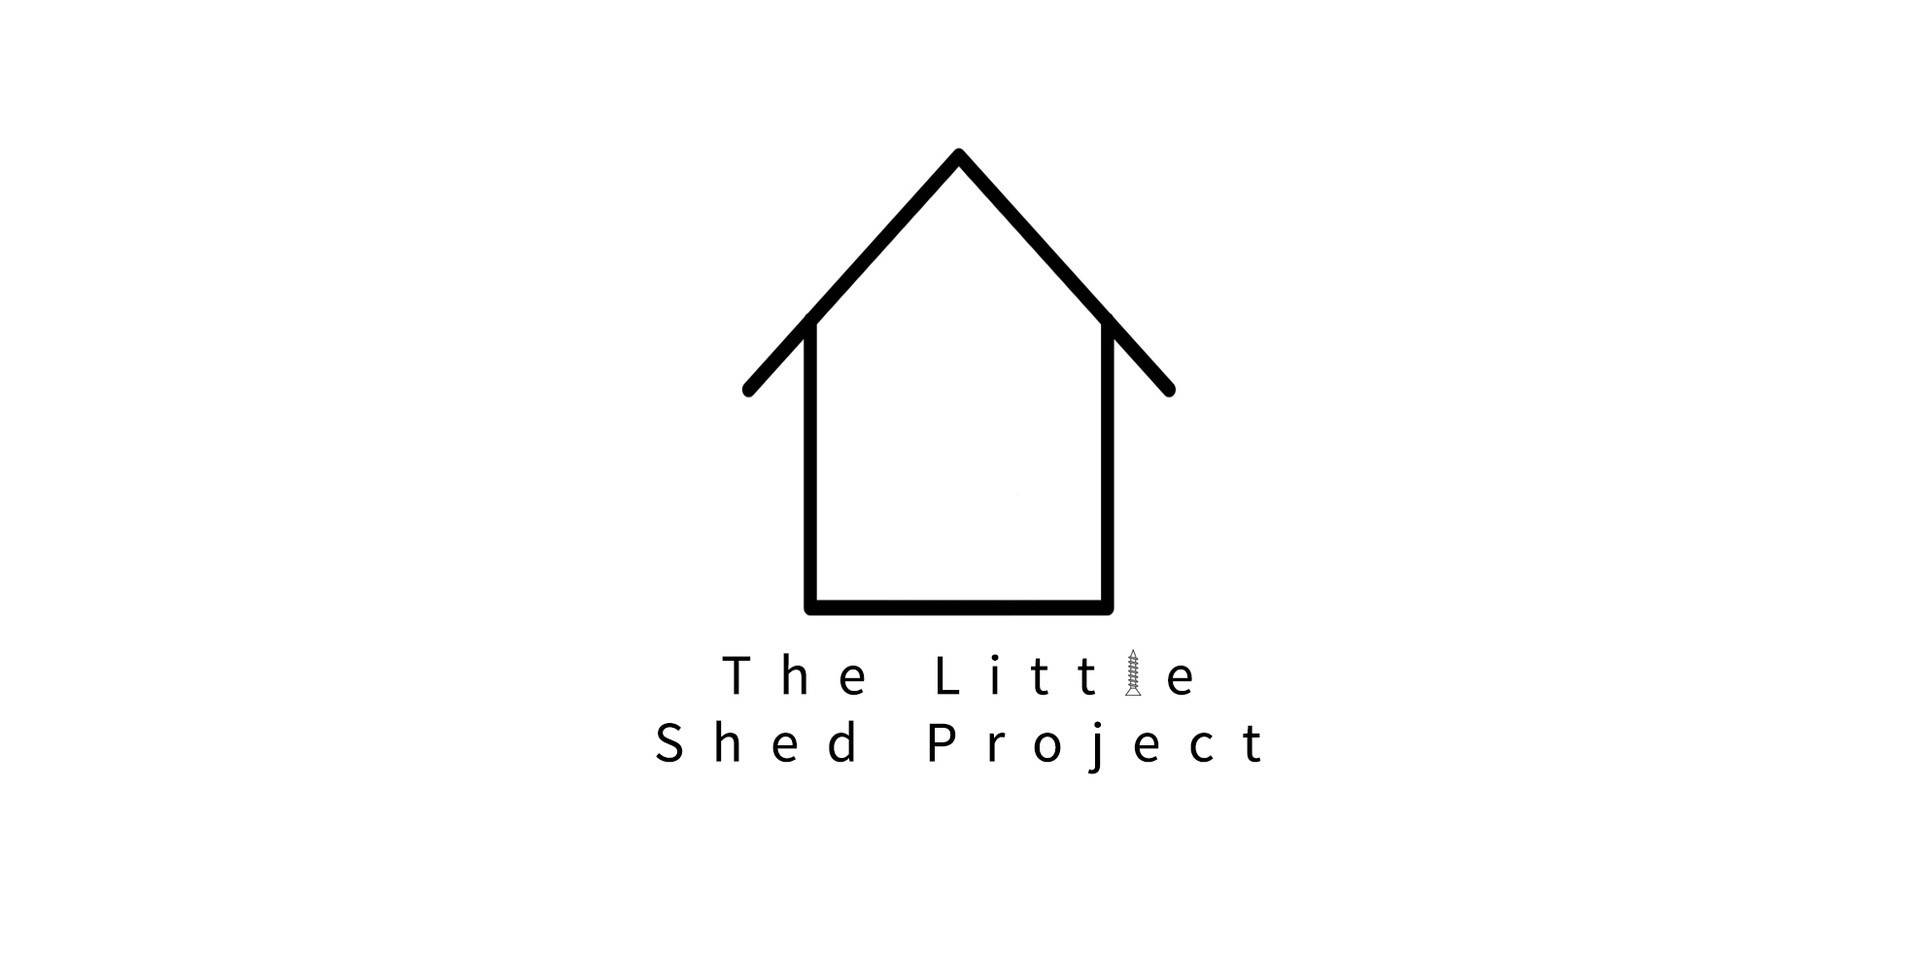 THE LITTLE SHED PROJECT